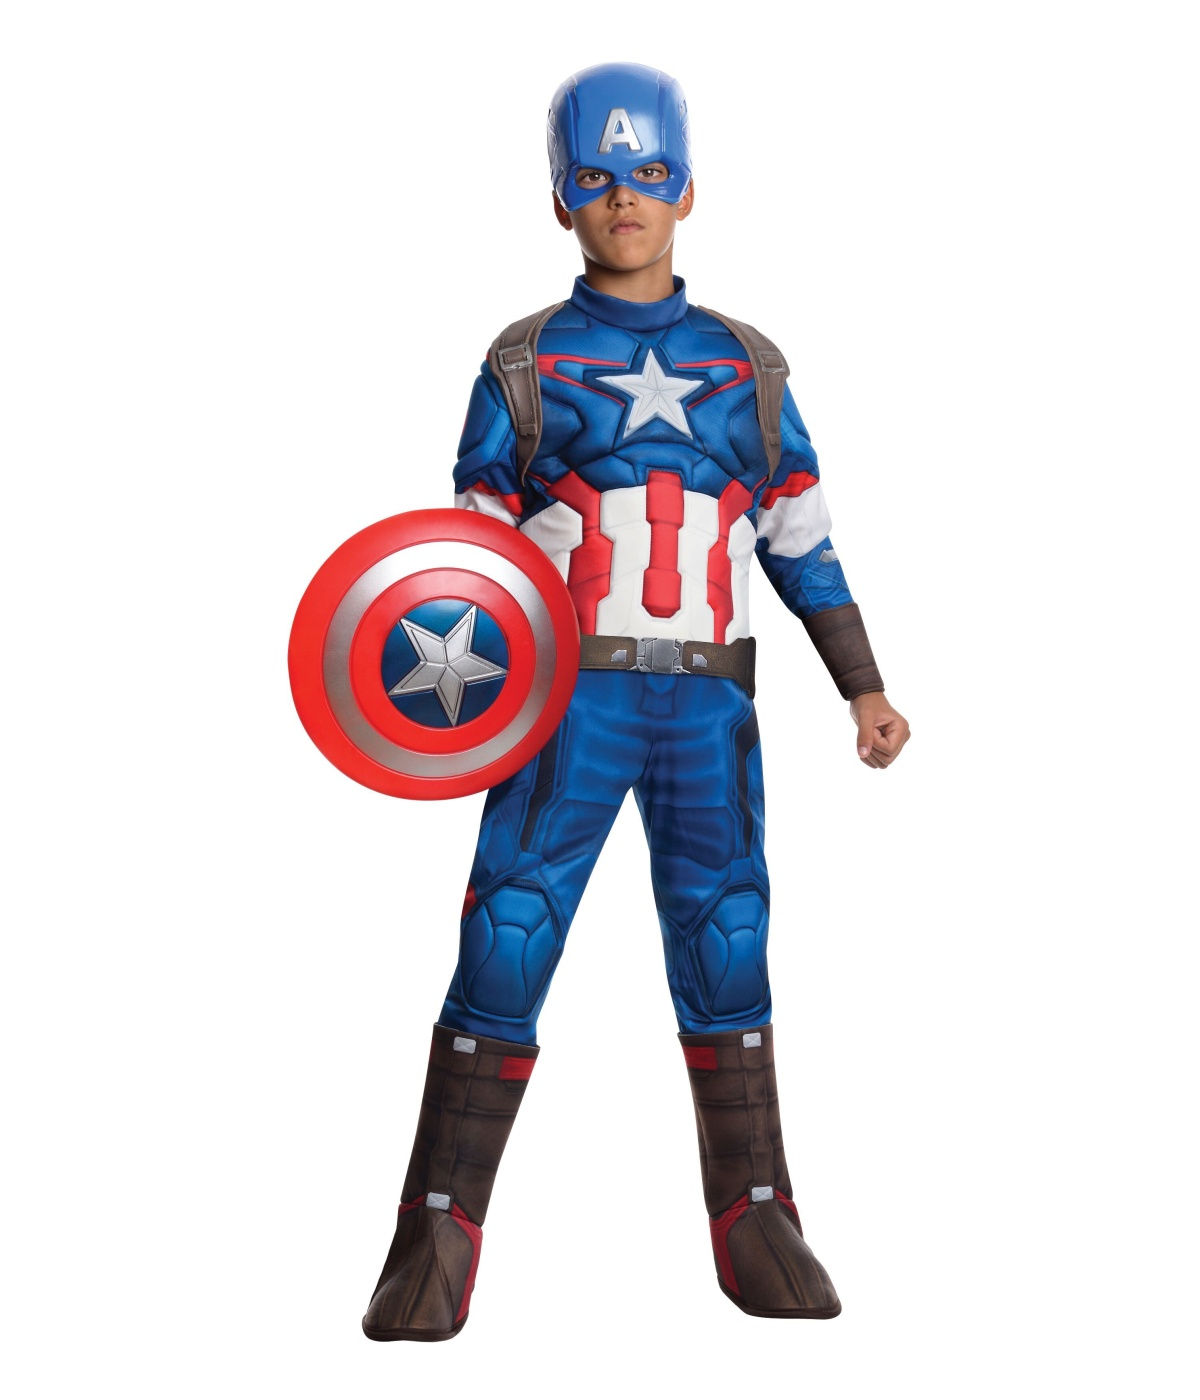 Captain America Costumes Assemble the Avengers and suit up and style when you shop Spirit Halloween for your next Captain America costume! Don his signature red, white, and blue suit and get ready to save the world from any villain that comes your way—and don't forget your shield!